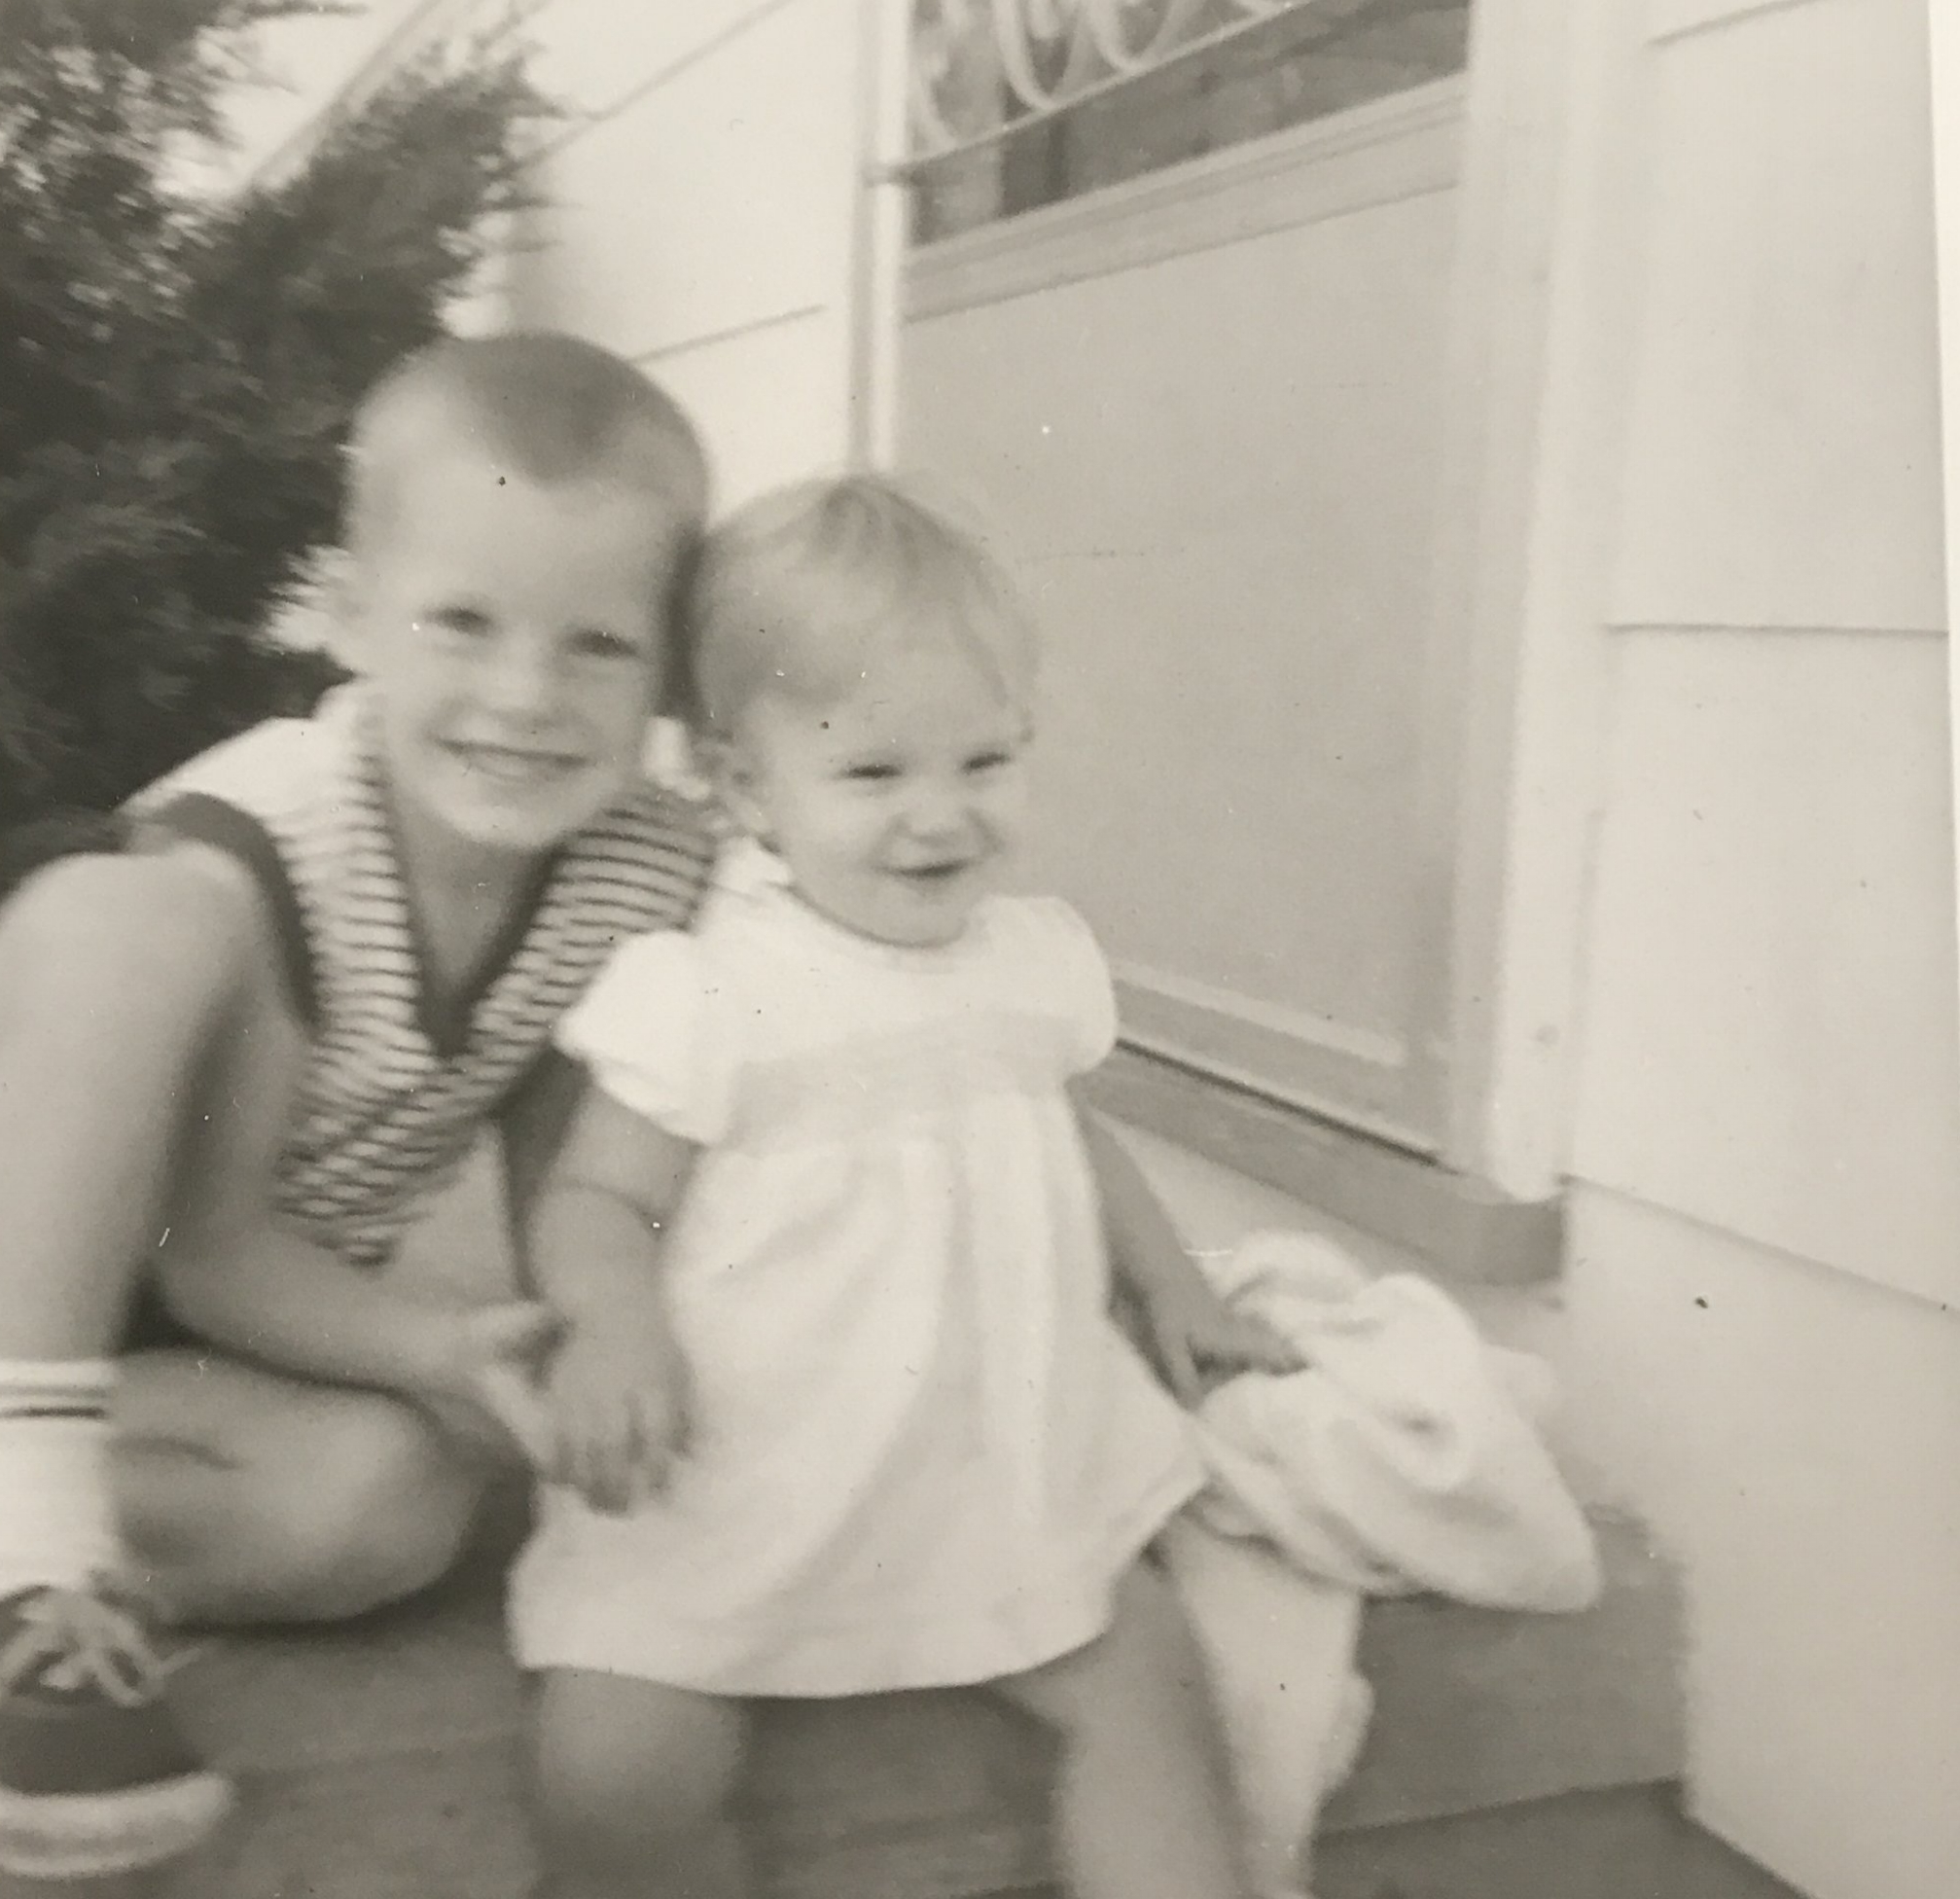 Me showing off my baby sister on our porch.